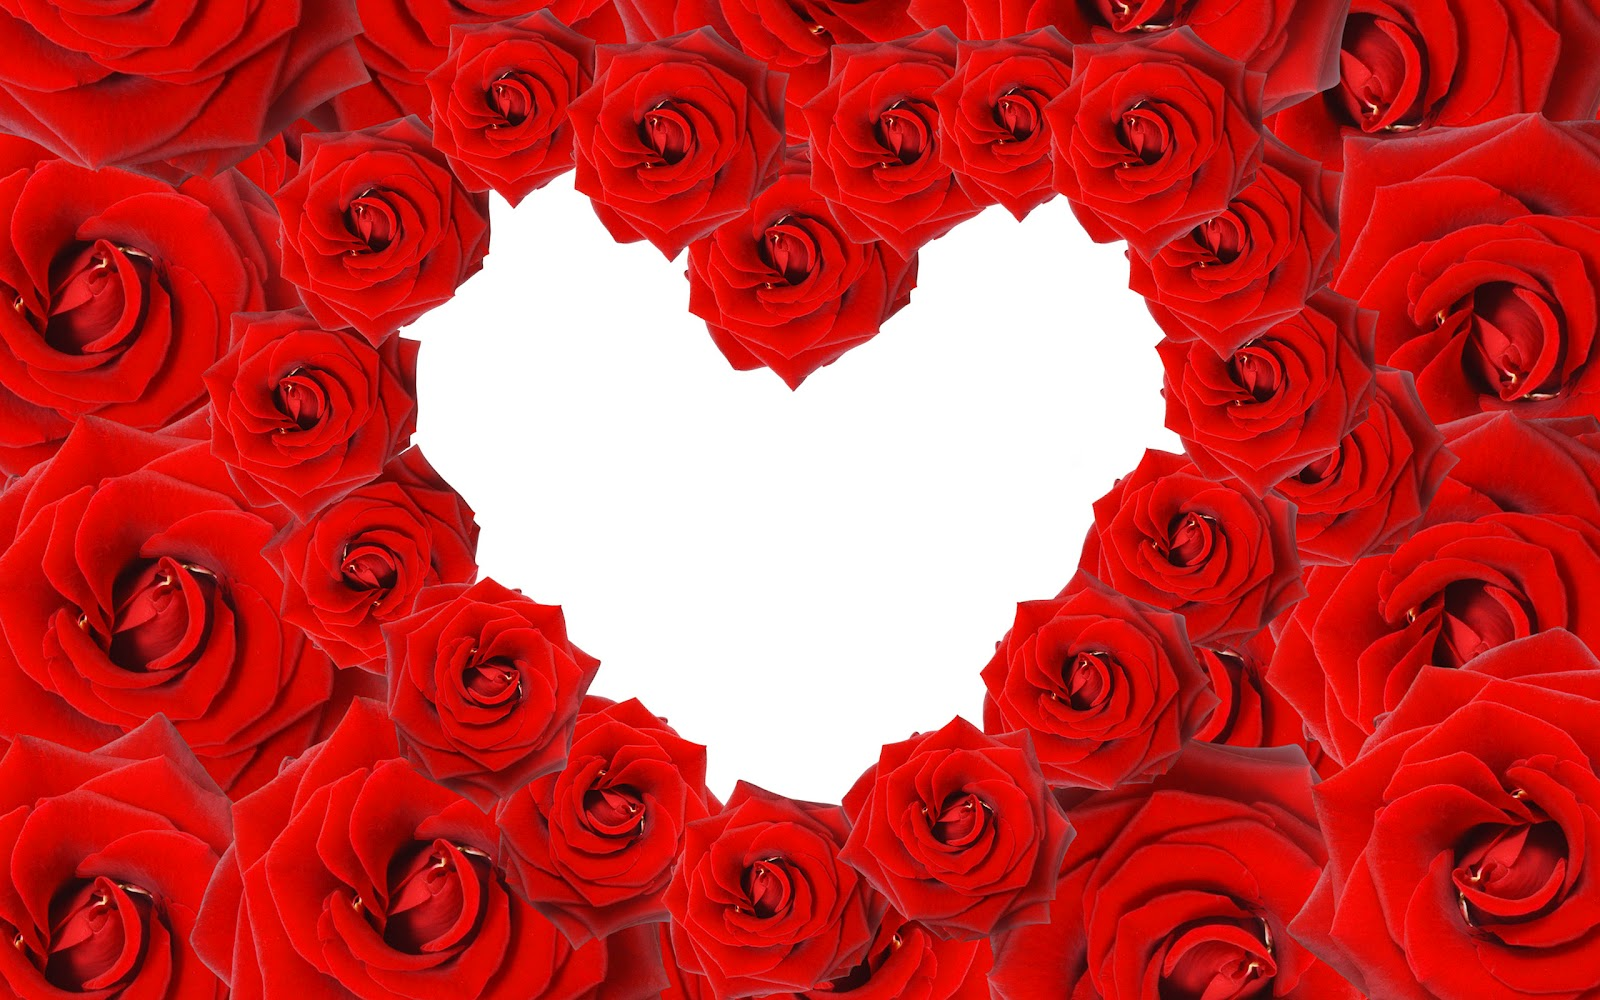 HD Red Rose Wallpaper|Free red roses HD wallpapers ...